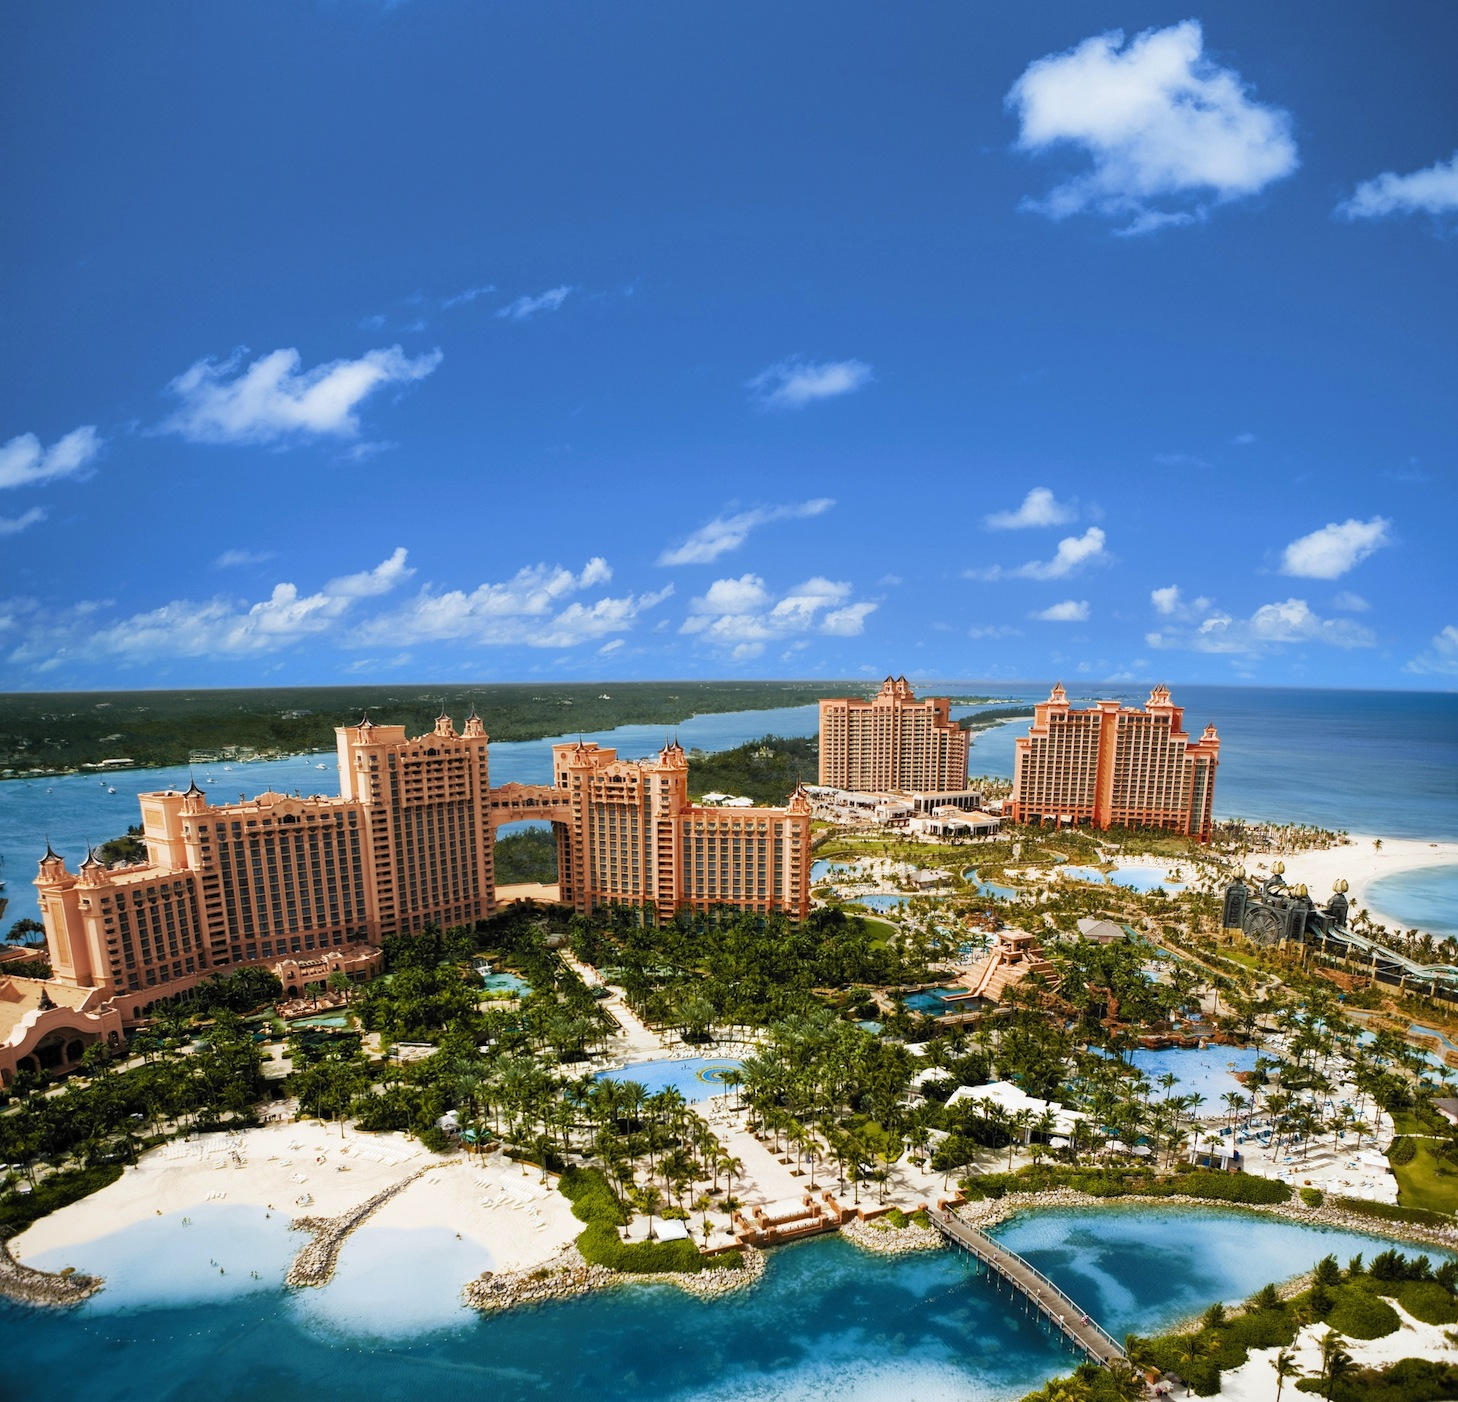 The Cove Atlantis A Sophisticated Escape On Paradise Island Blog